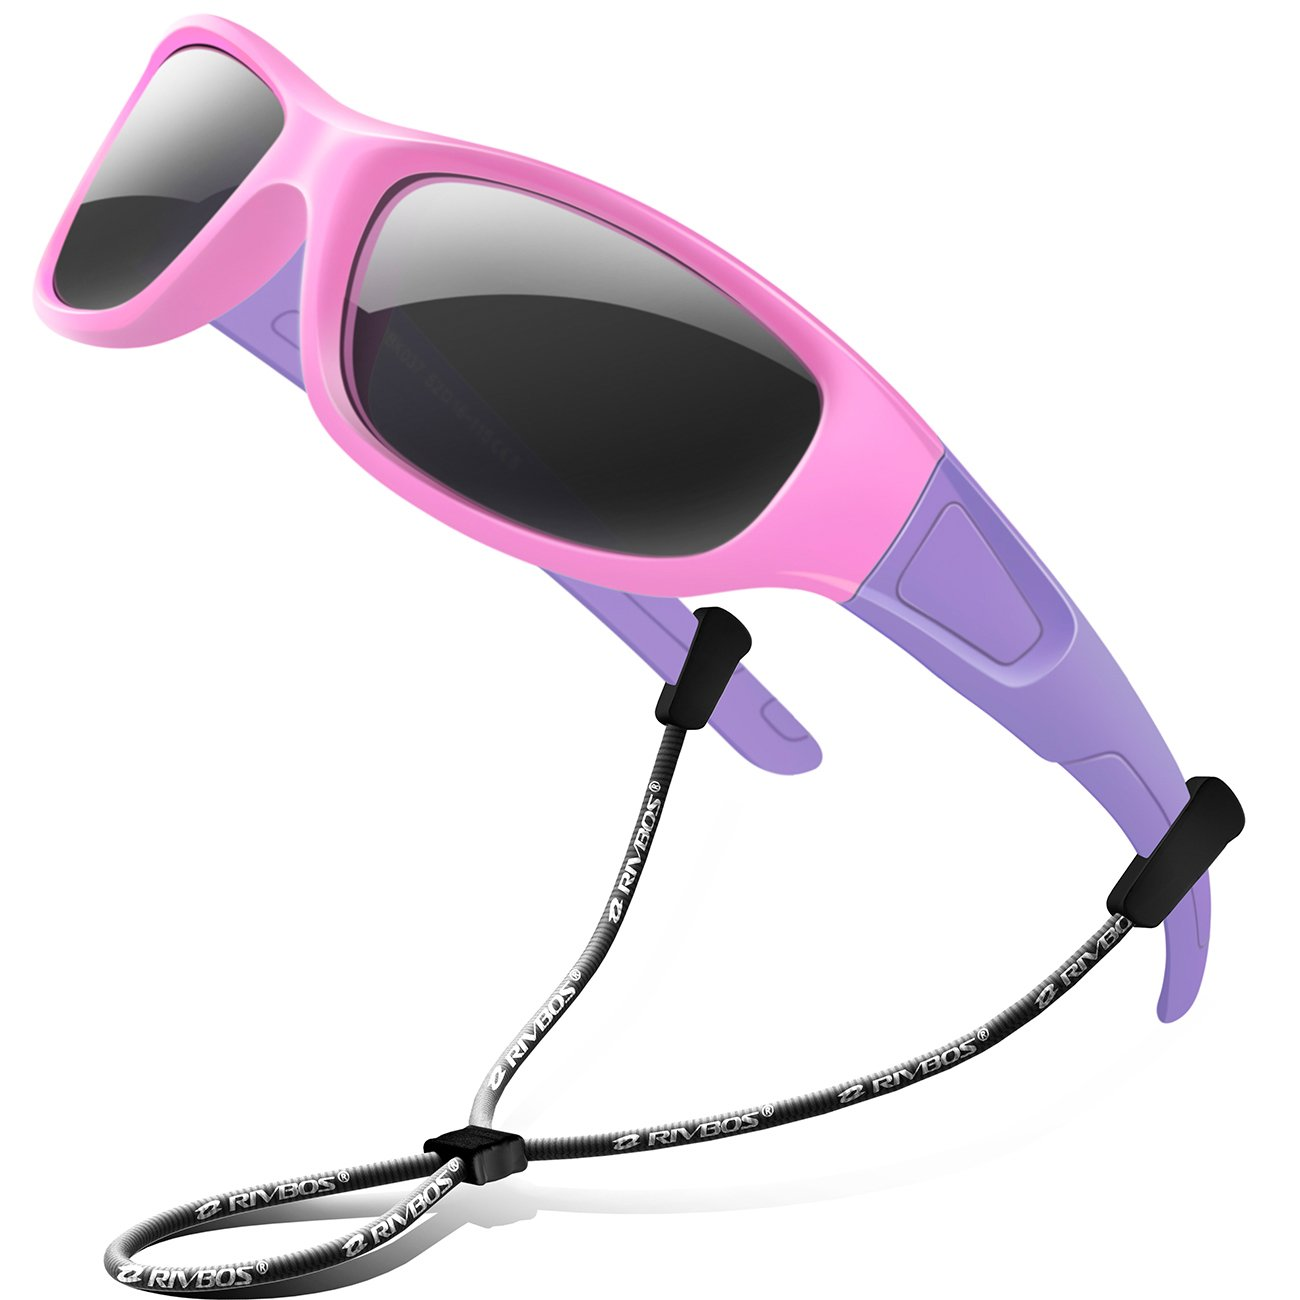 RIVBOS Rubber Kids Polarized Sunglasses With Strap Glasses shades for Boys Girls Baby and Children Age 3-10 RBK037(Pink,Black Polarized Lens)